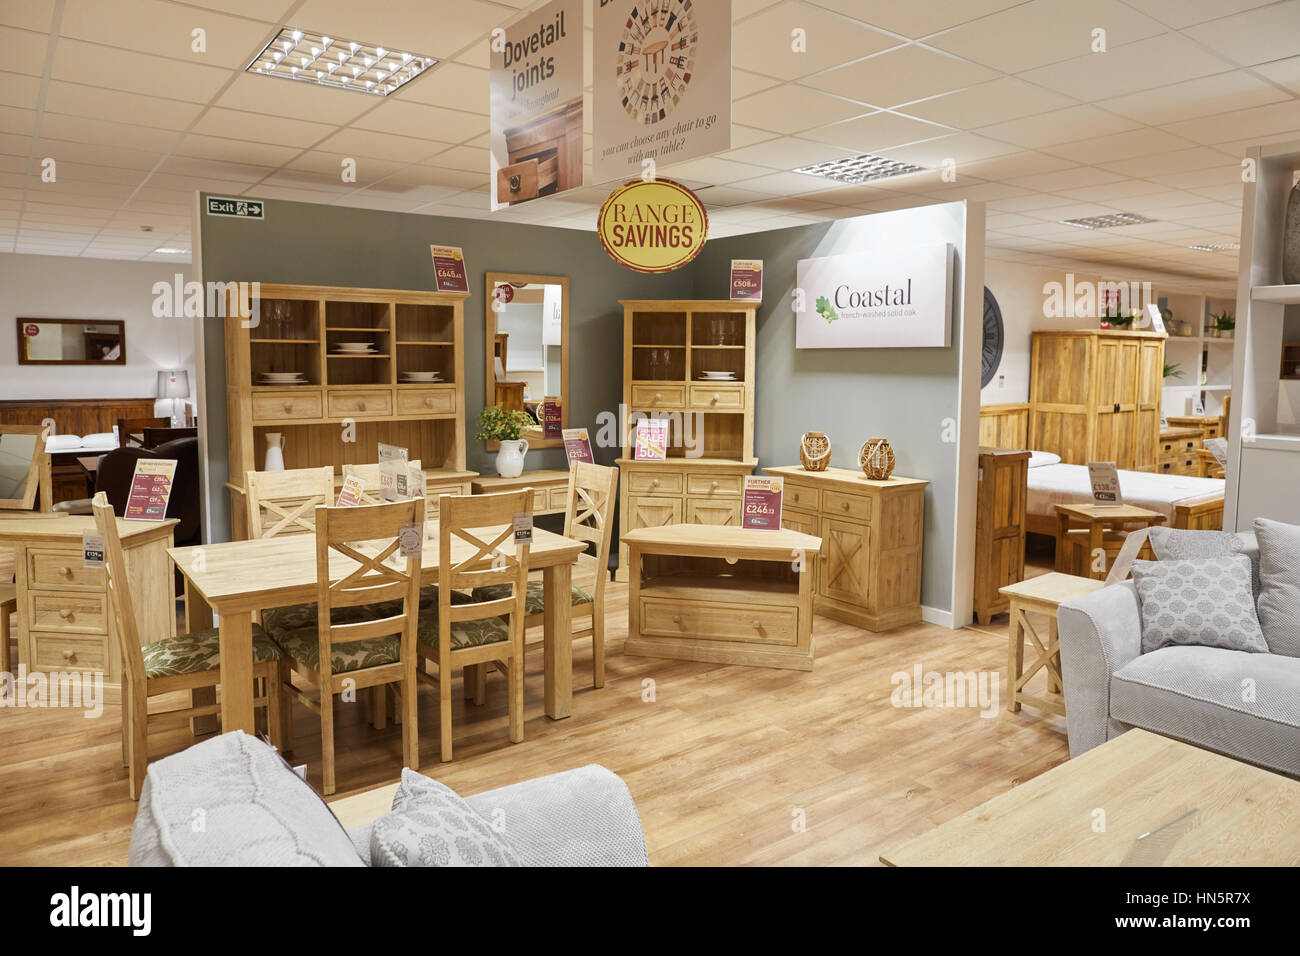 The interior of macclesfield oak furniture land a privately owned british designer manufacturer and retailer of fully assembled hardwood cabinetry f